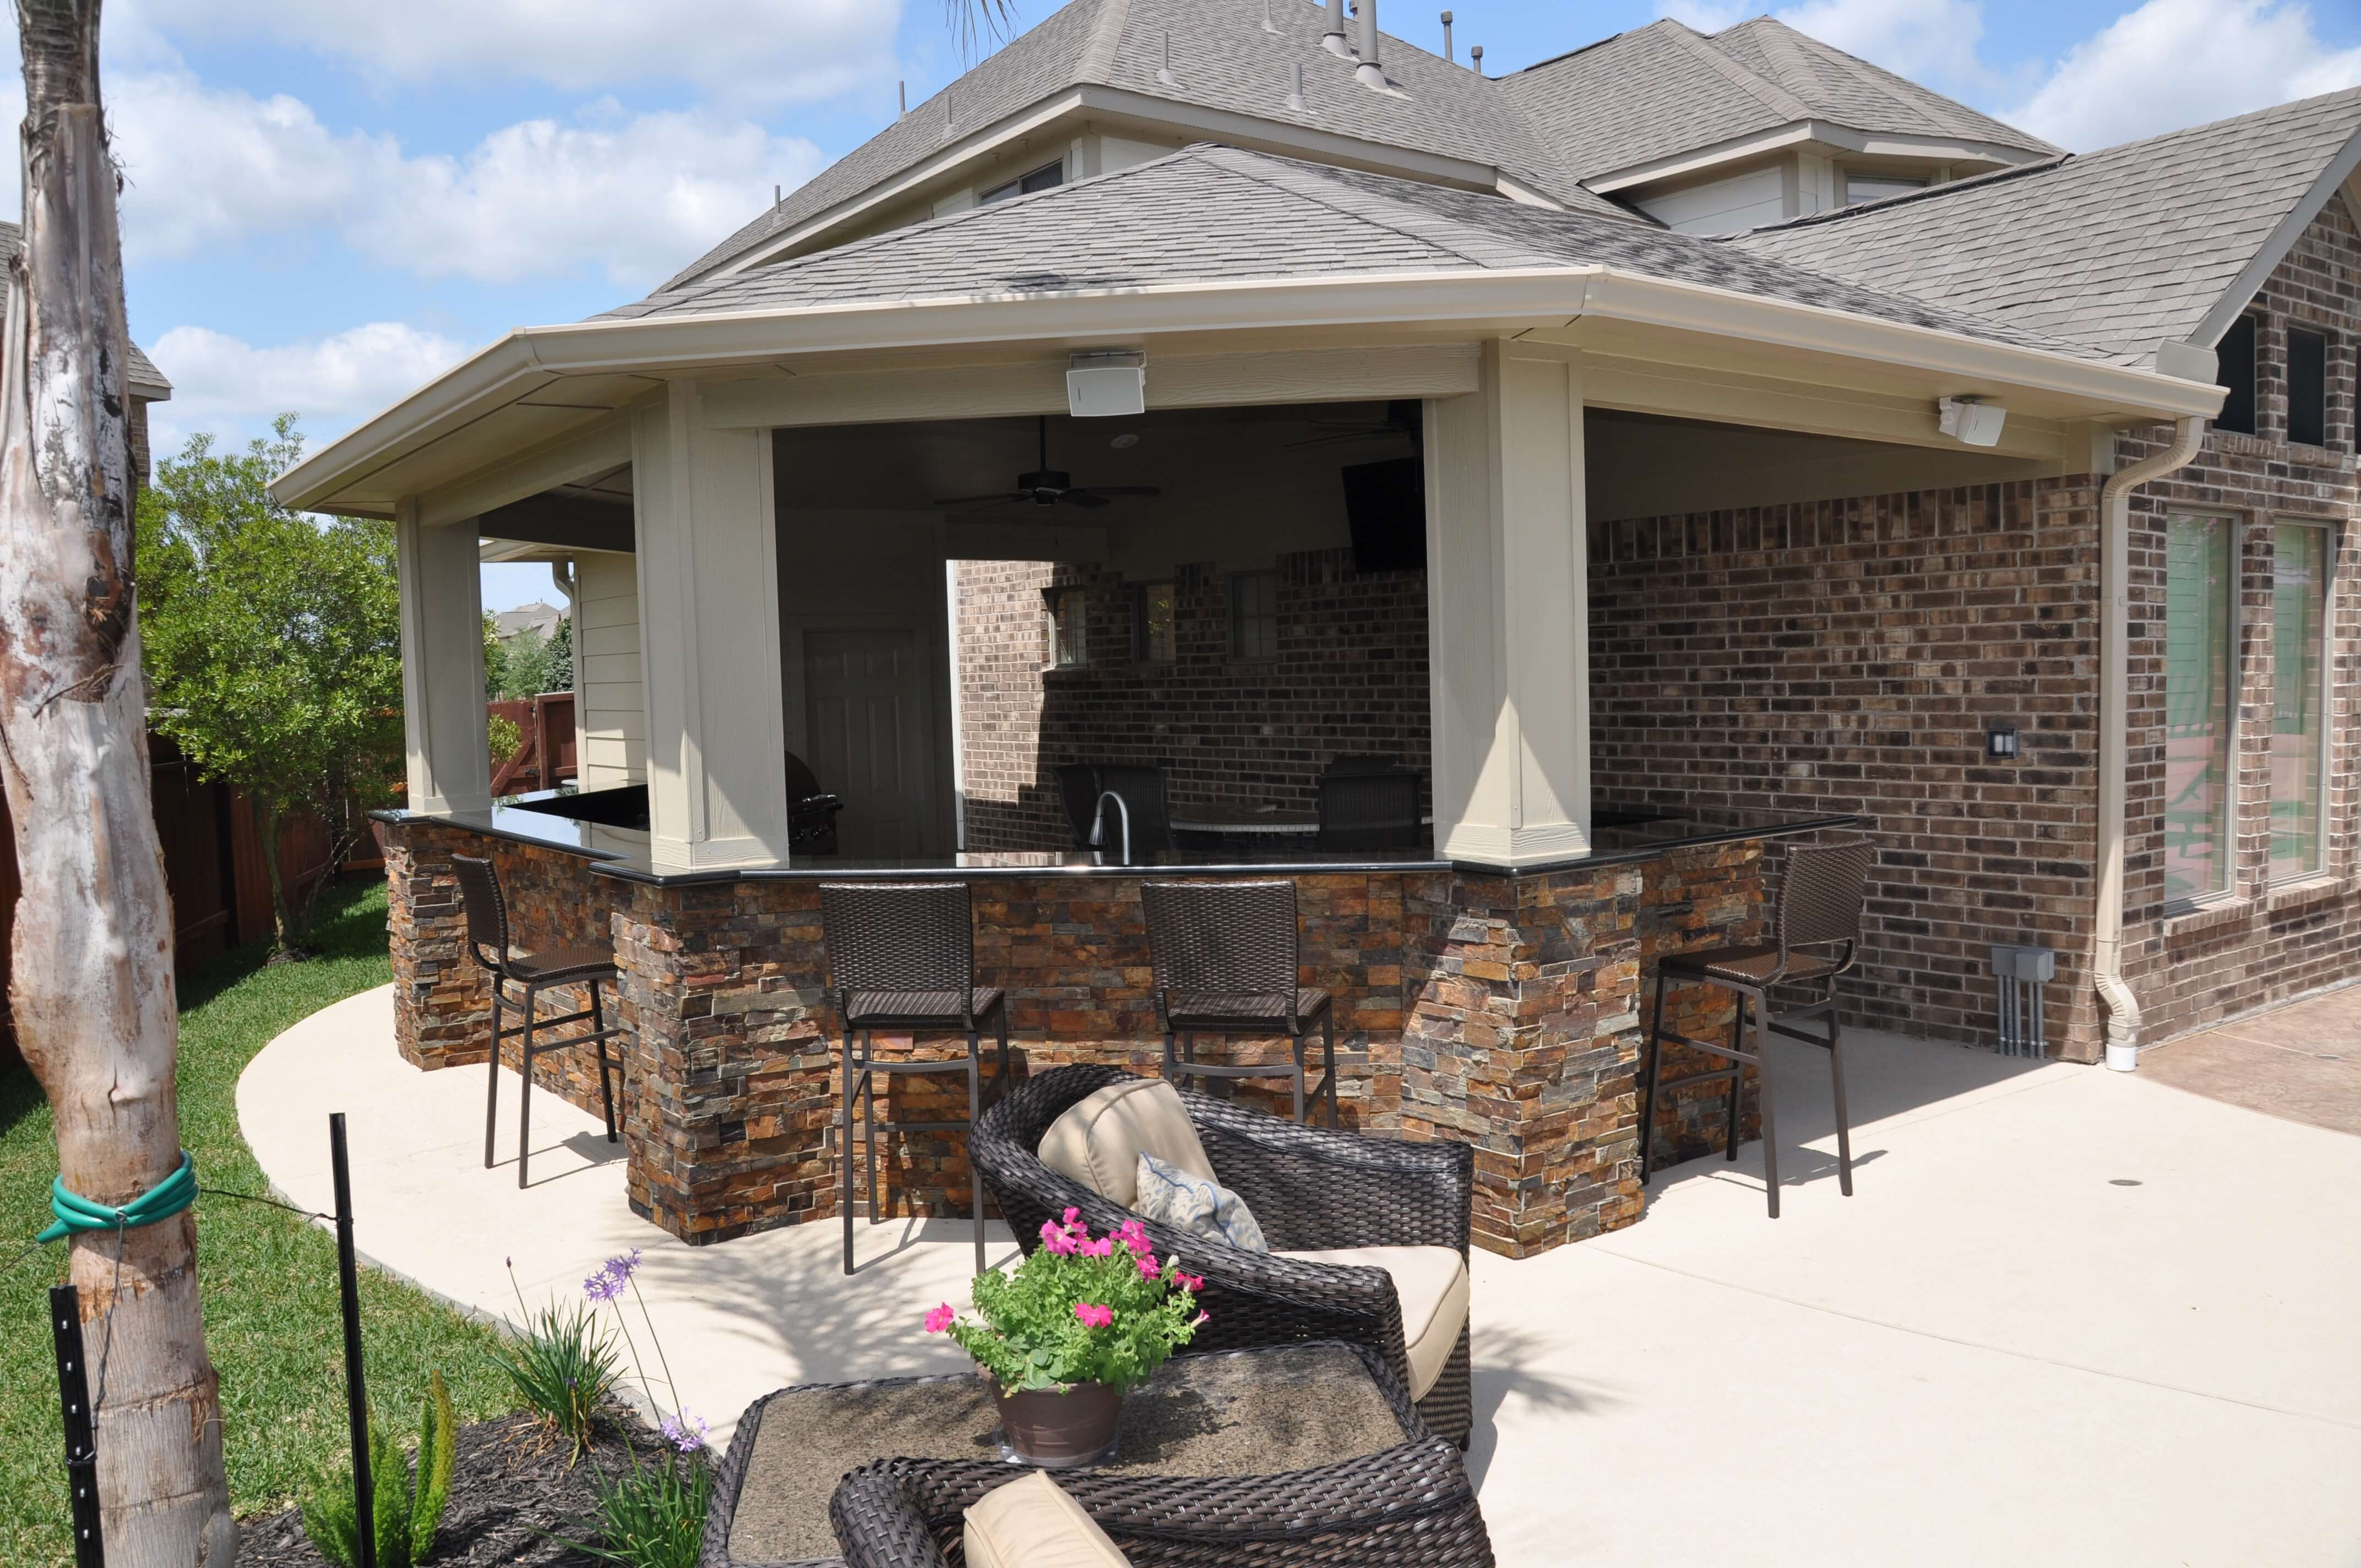 Pearland Outdoor Living Photos | League City Pool Builder on Outdoor Kitchen With Covered Patio id=95576